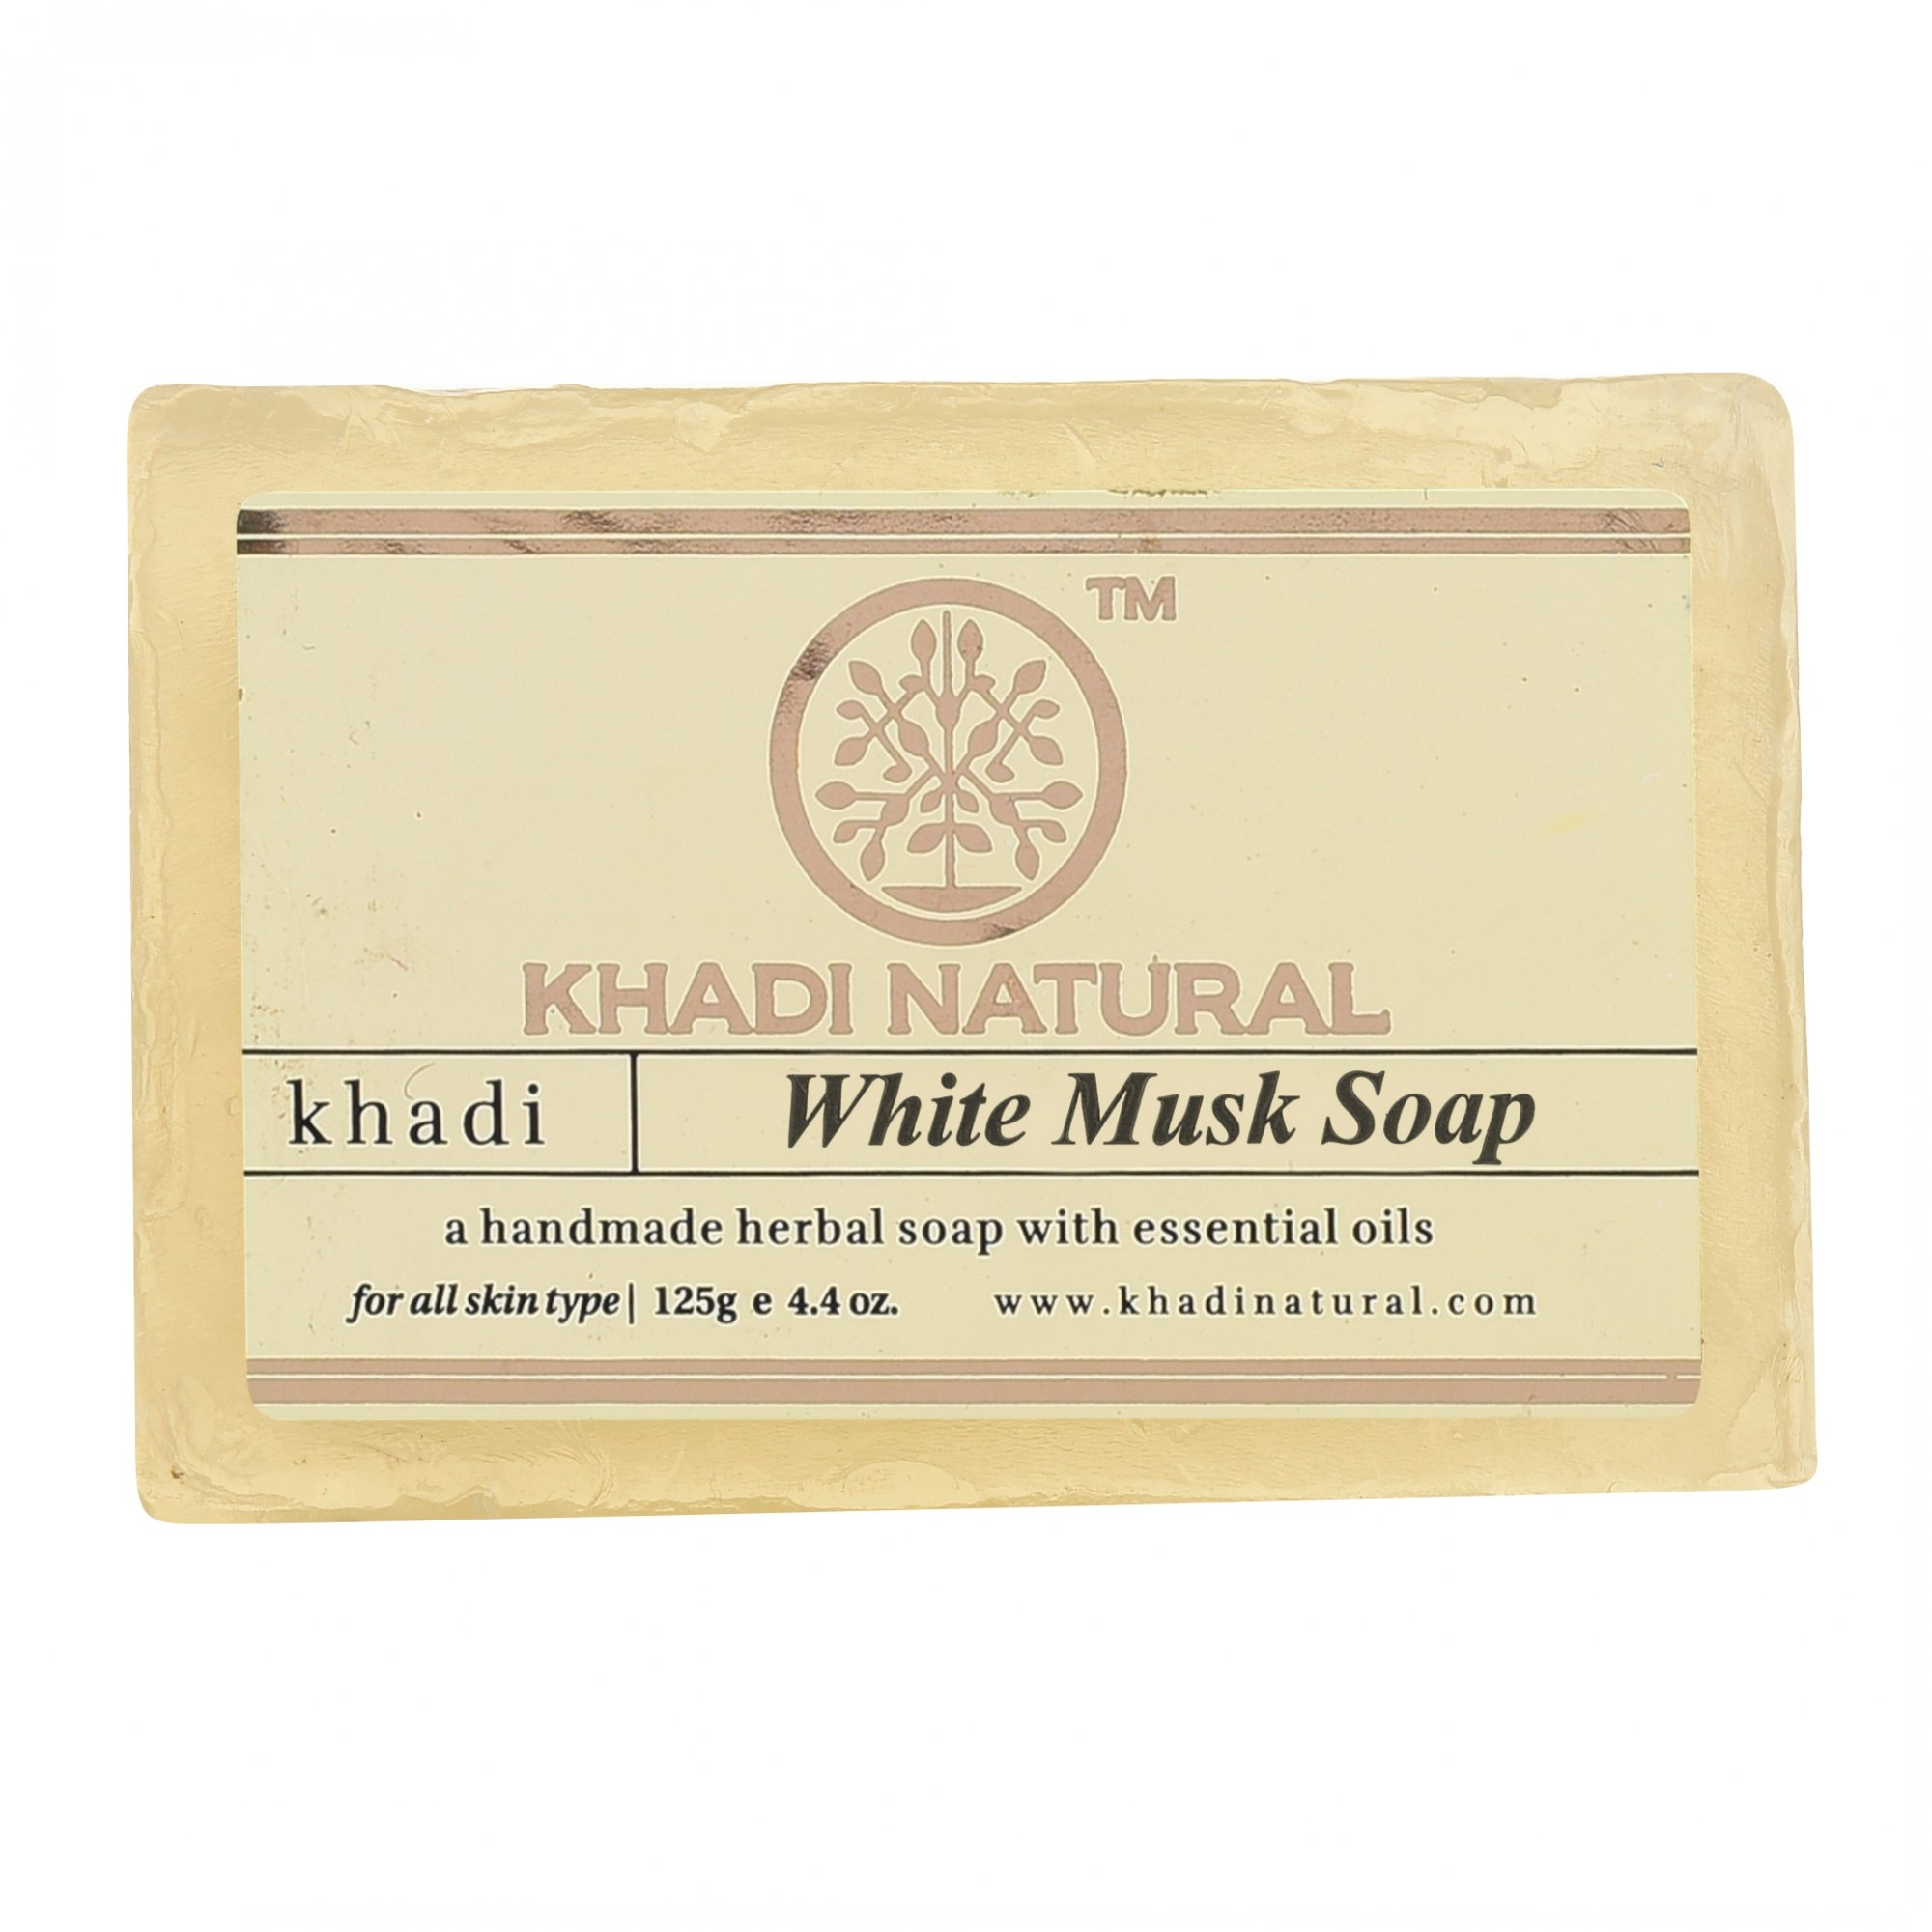 Мыло White Musk Soap Khadi Natural (Мыло Белый Мускус Кхади Натурал) 125гр